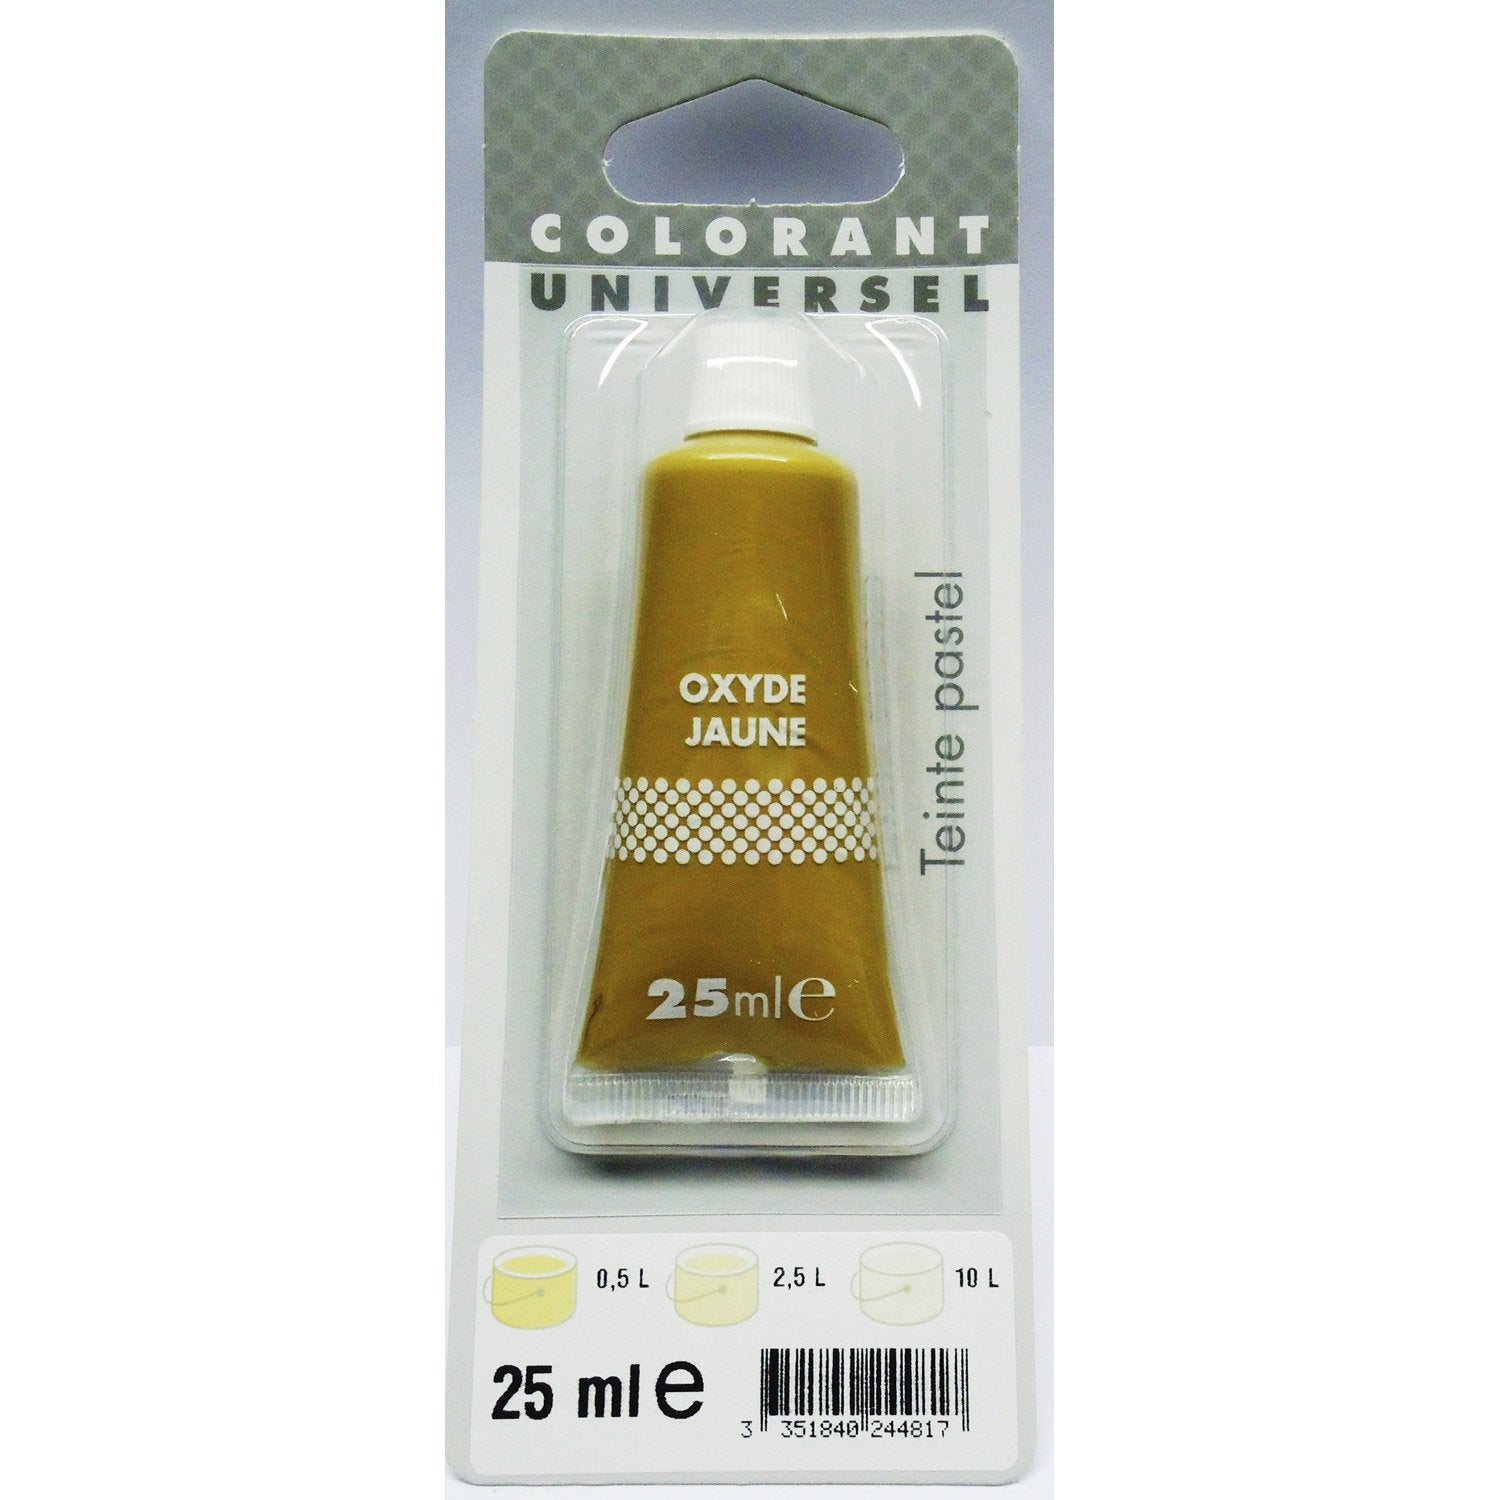 colorant universel oxyde jaune 25 ml - Colorant Peinture